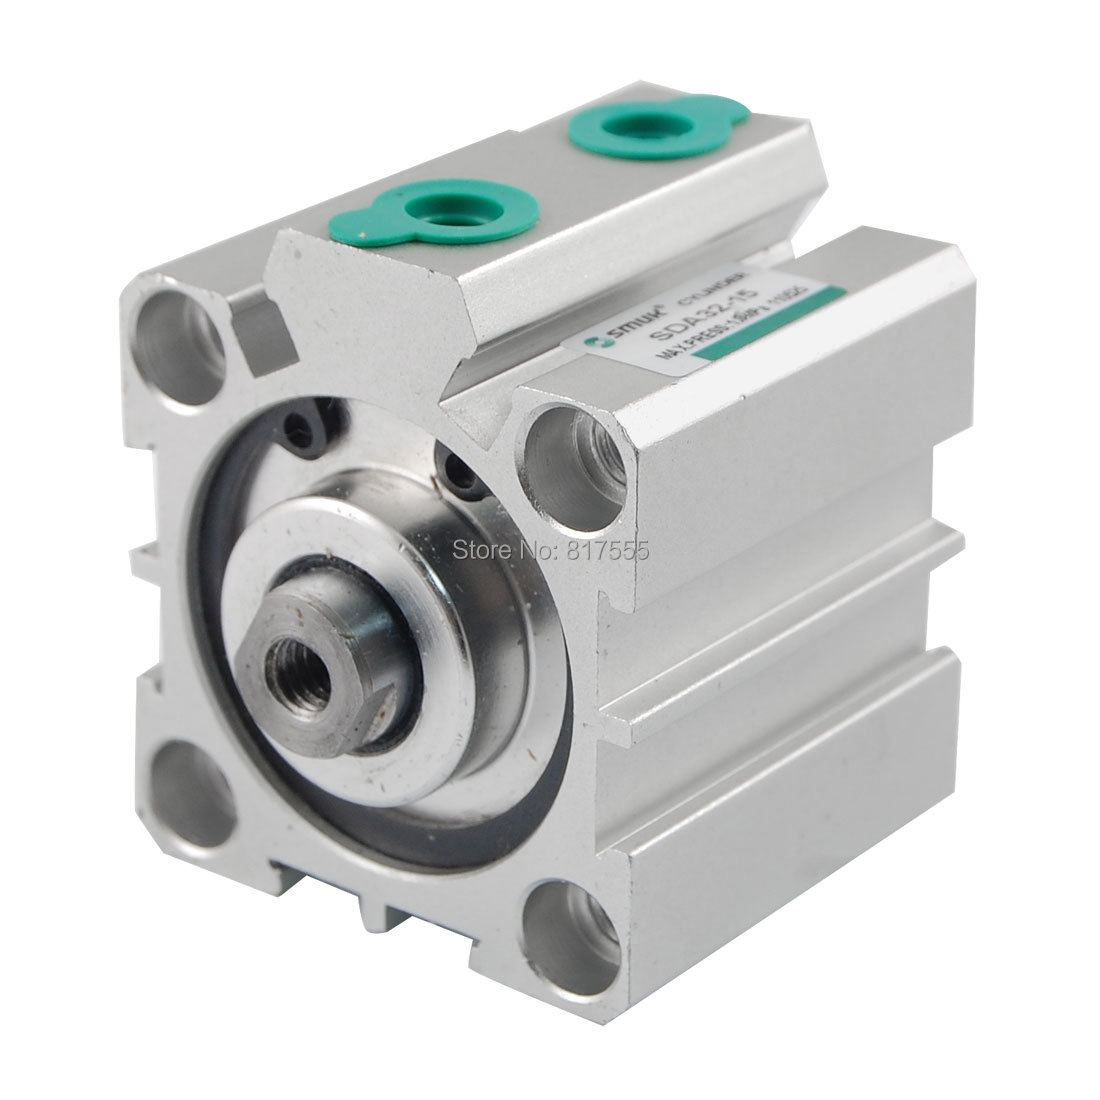 32mm Bore 15mm Stroke Compact Pneumatic Air Cylinder SDA32mm Bore 15mm Stroke Compact Pneumatic Air Cylinder SDA